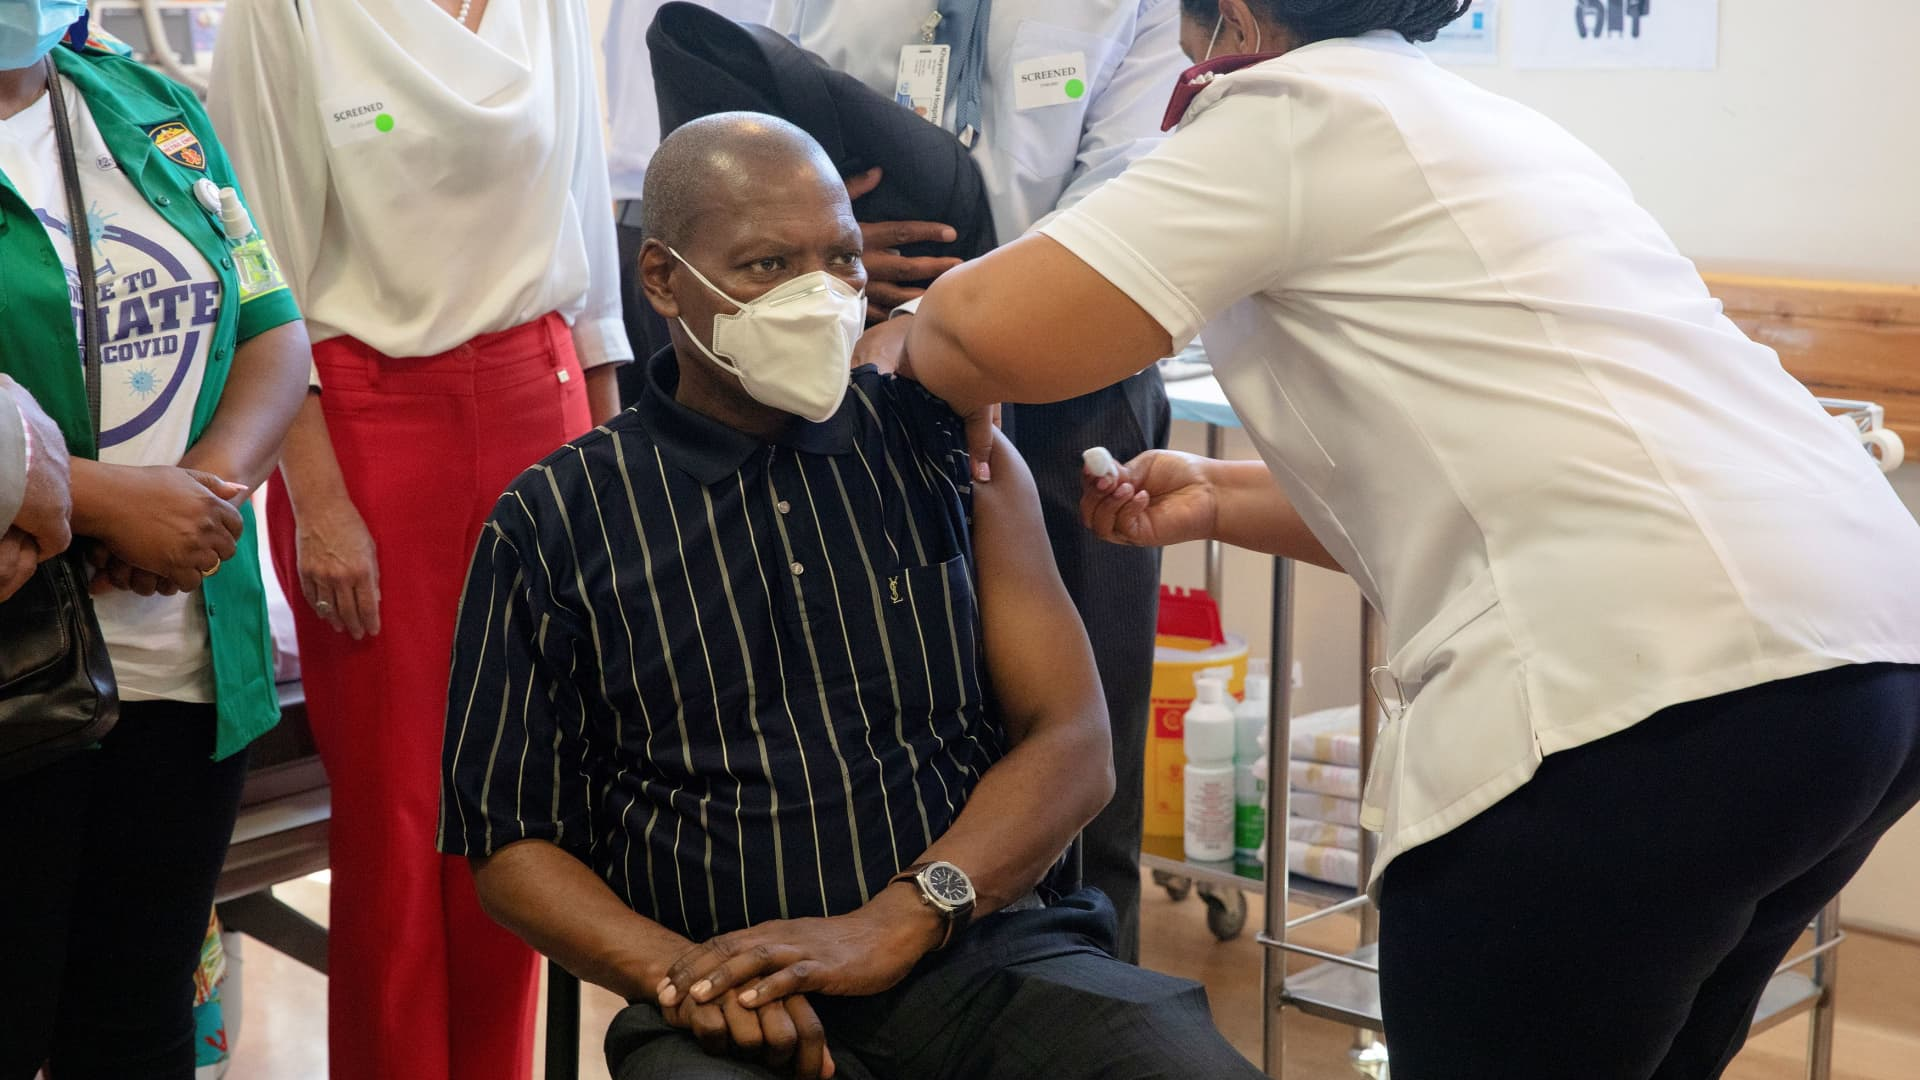 South African Health Minister Zweli Mkhize receives the Johnson and Johnson coronavirus disease (COVID-19) vaccination at the Khayelitsha Hospital near Cape Town, South Africa, February 17, 2021.